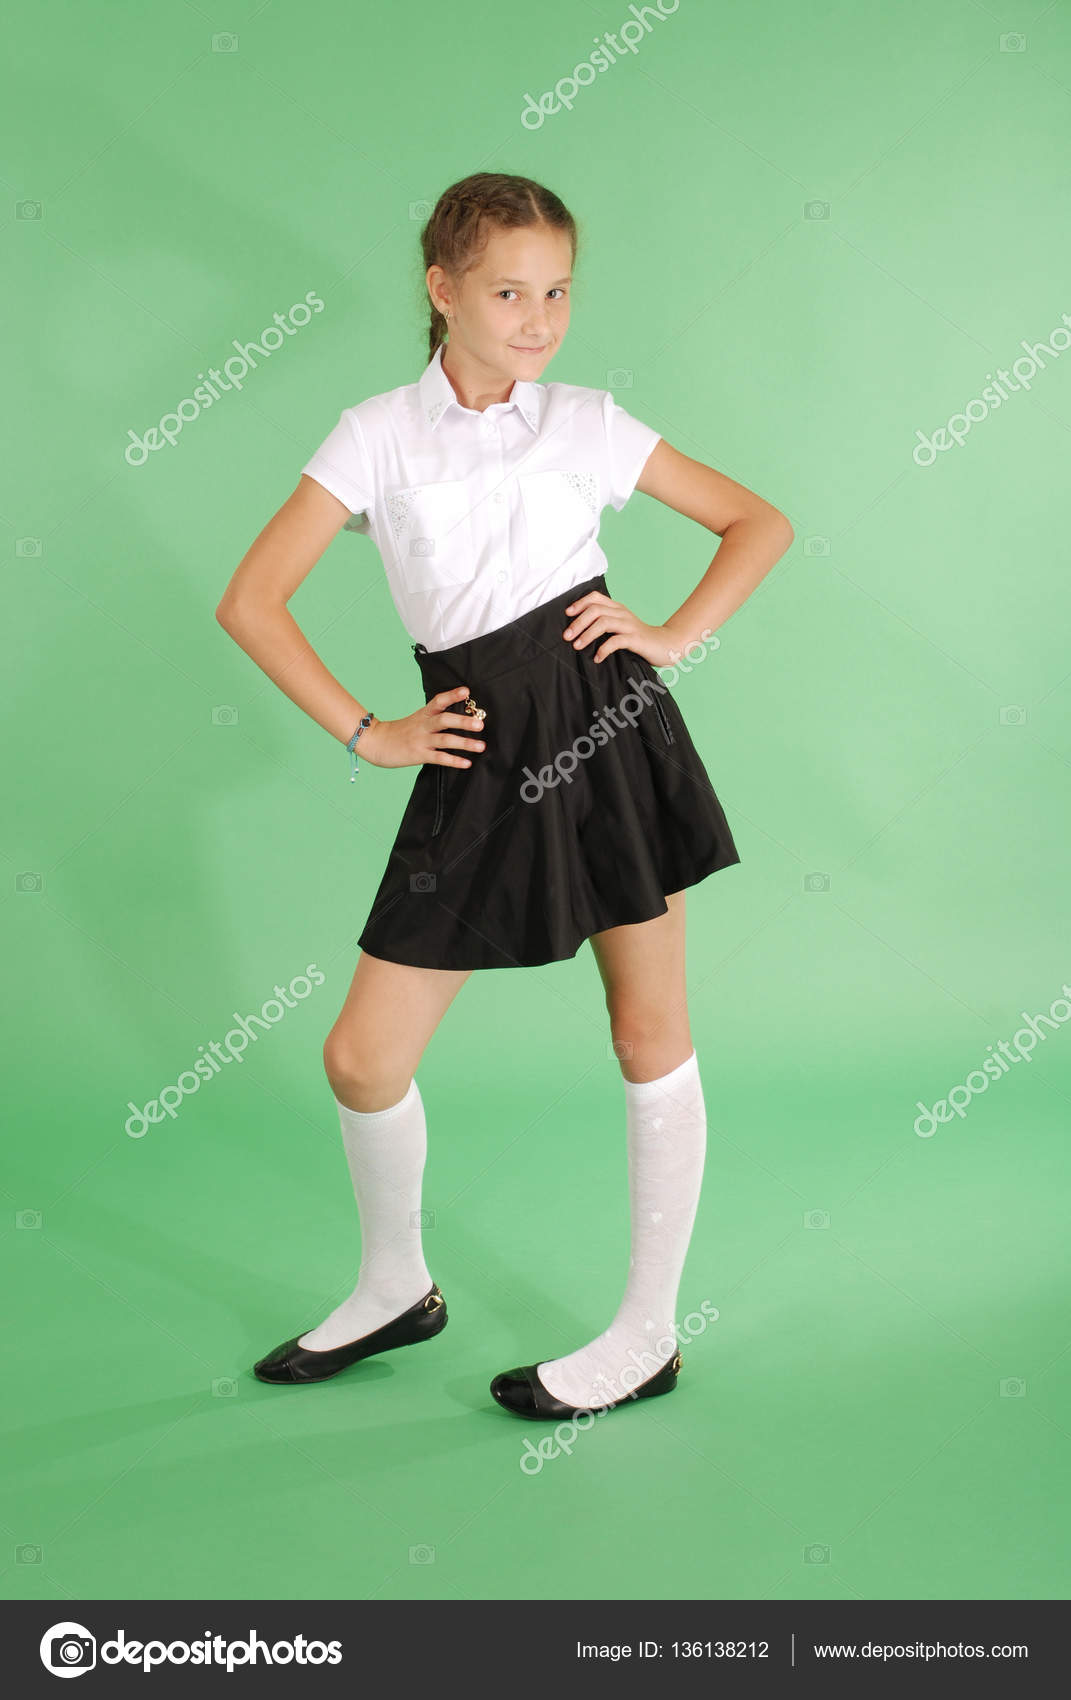 Apologise, Pics of young girls in school uniform